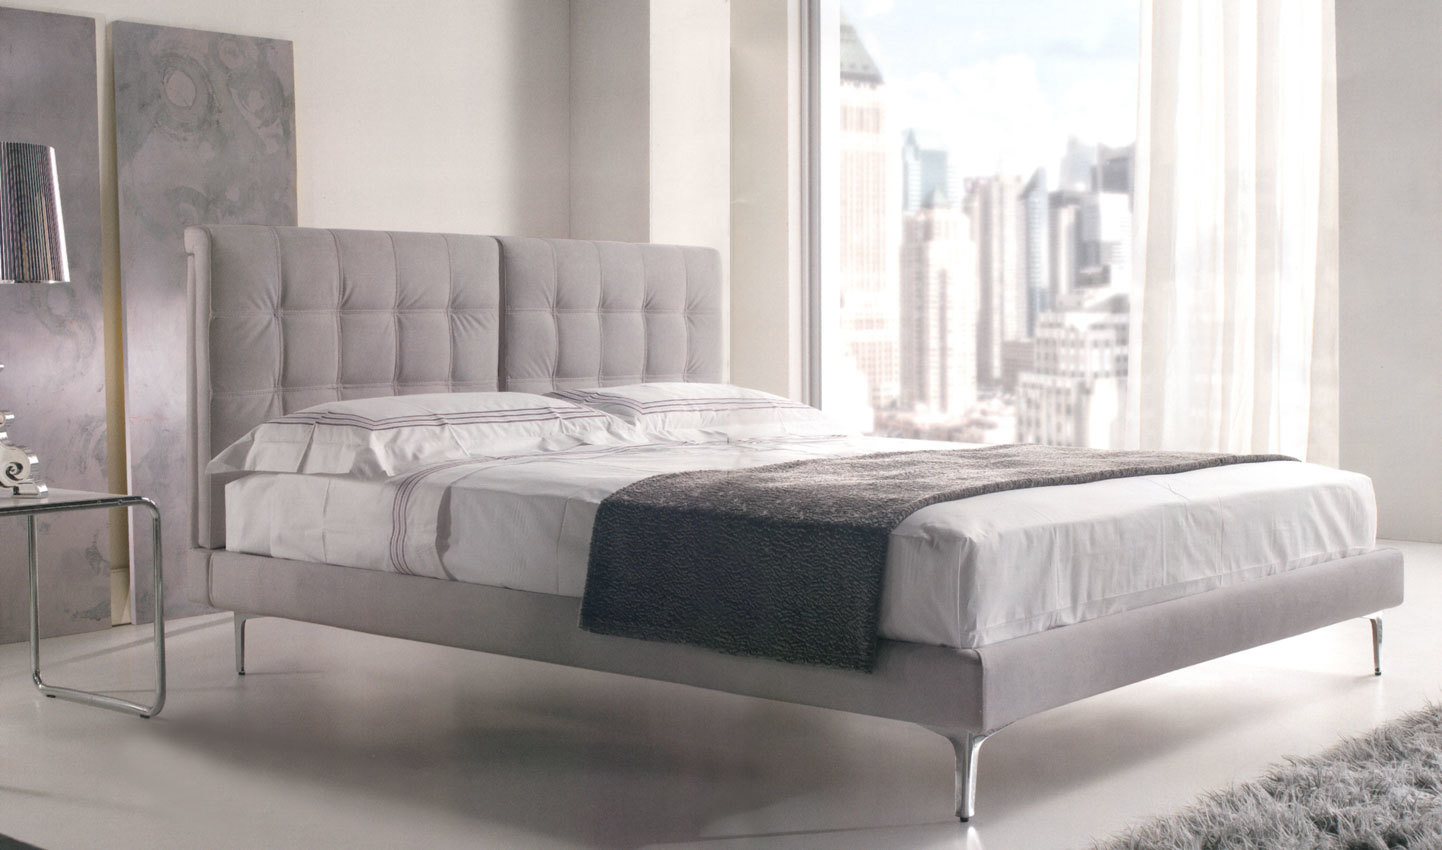 Arredo Кровать BEDDING Mercury